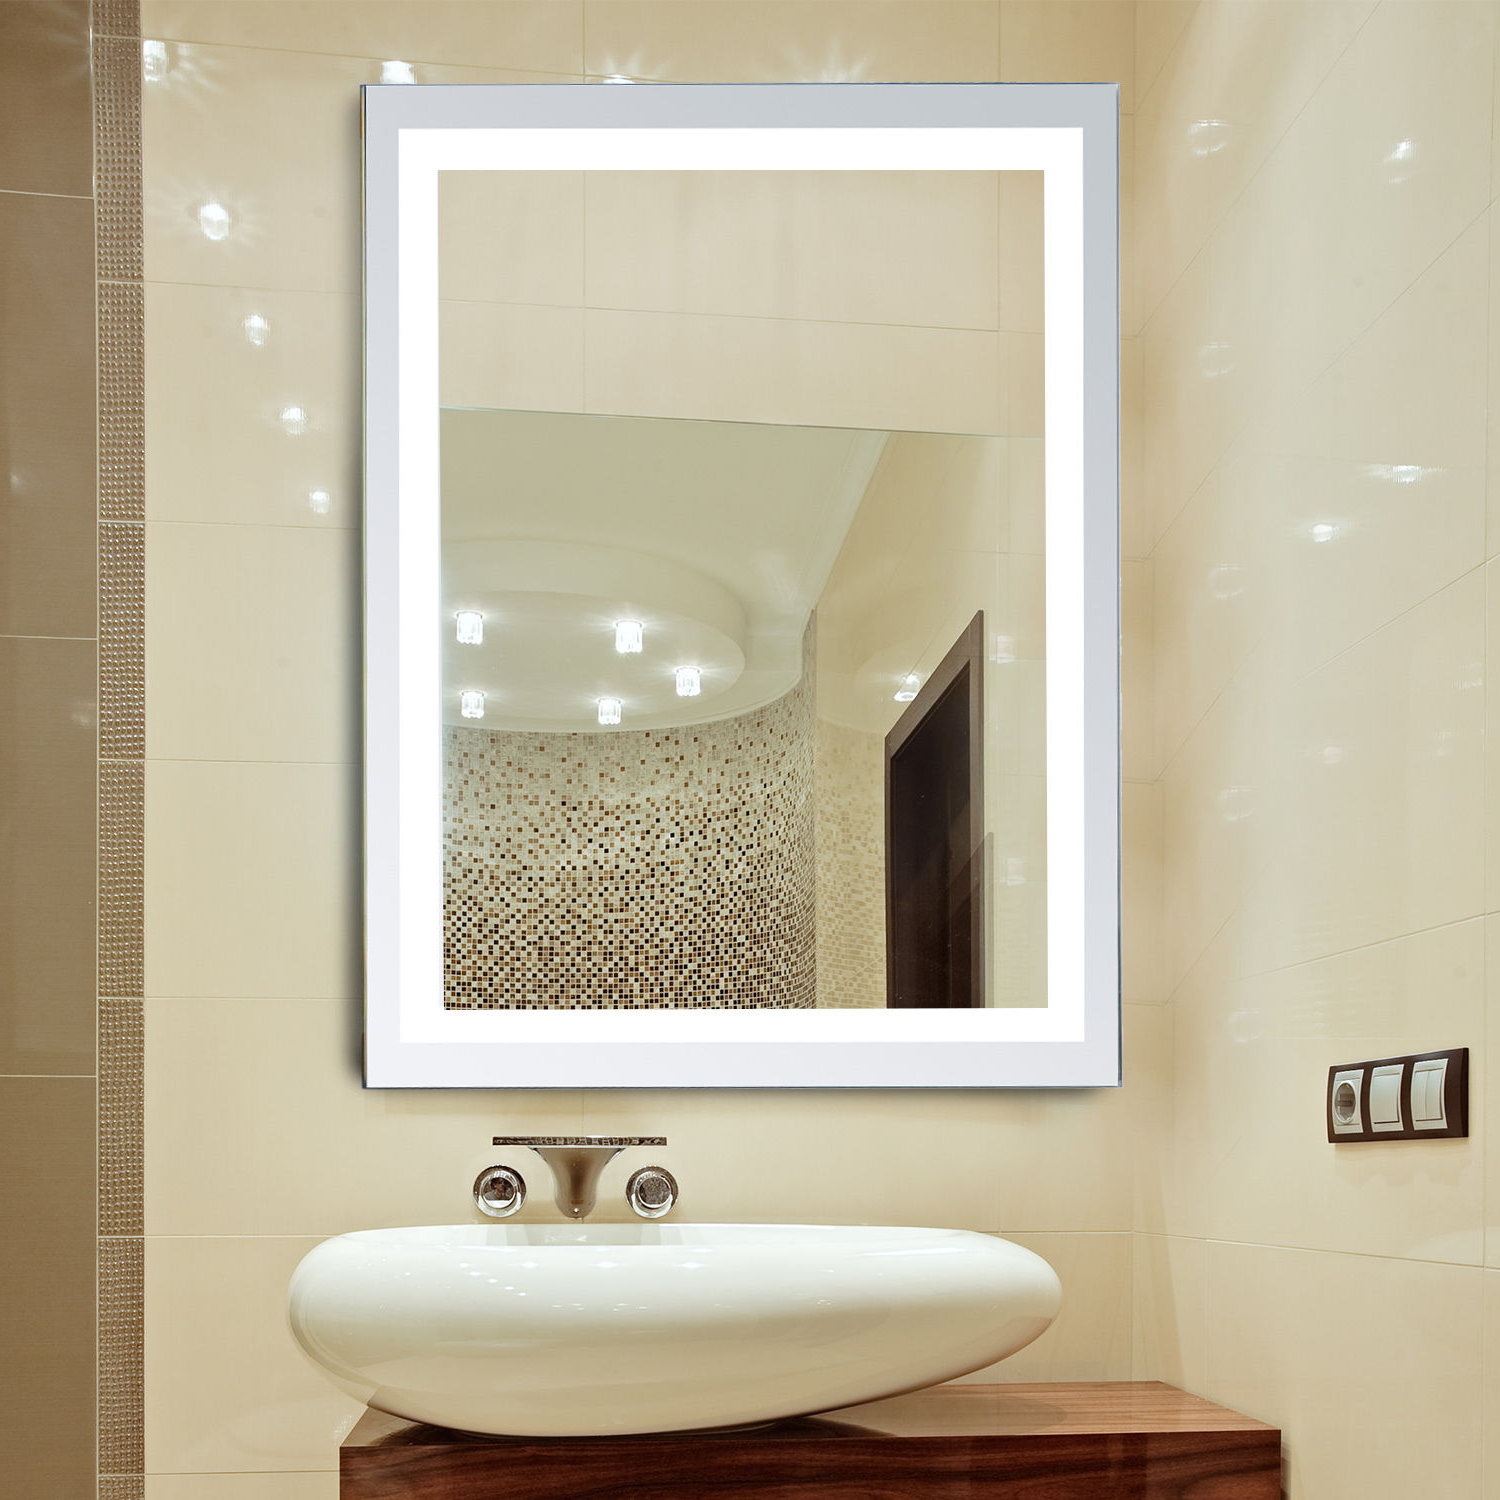 2019 Details About Led Illuminated Bathroom Wall Mirrors With Lights Modern Makeup Vanity Mirror With Backlit Bathroom Wall Mirrors (View 5 of 20)